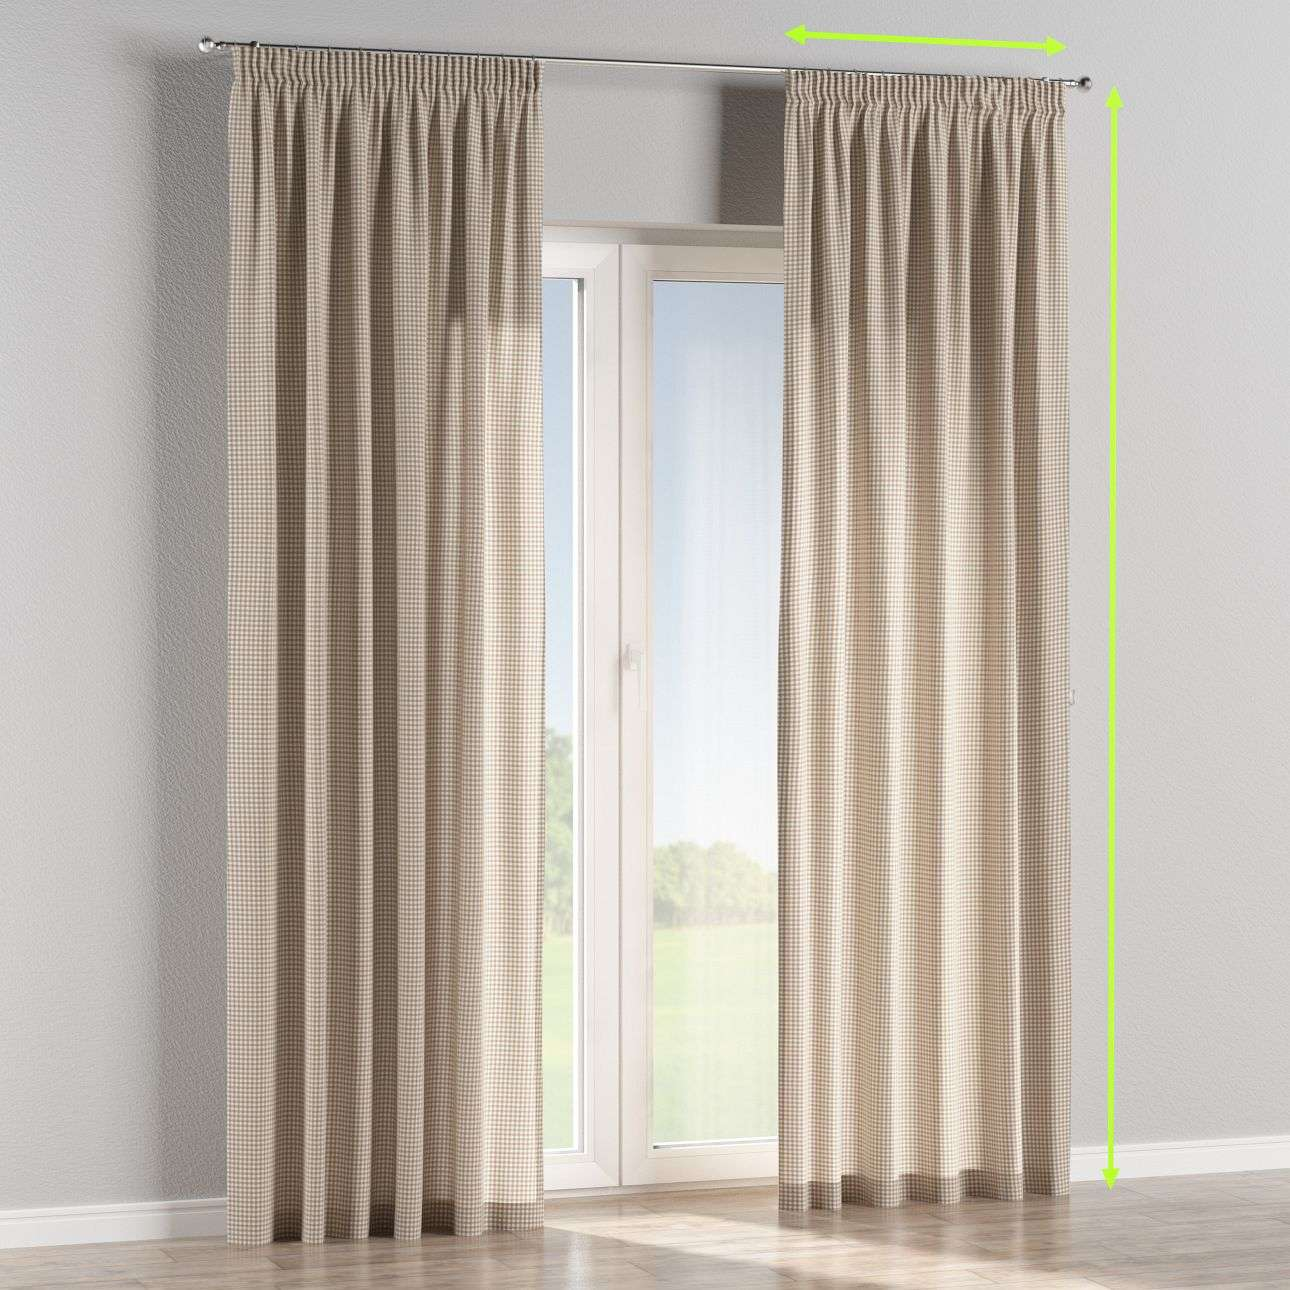 Pencil pleat lined curtains in collection Quadro, fabric: 136-05